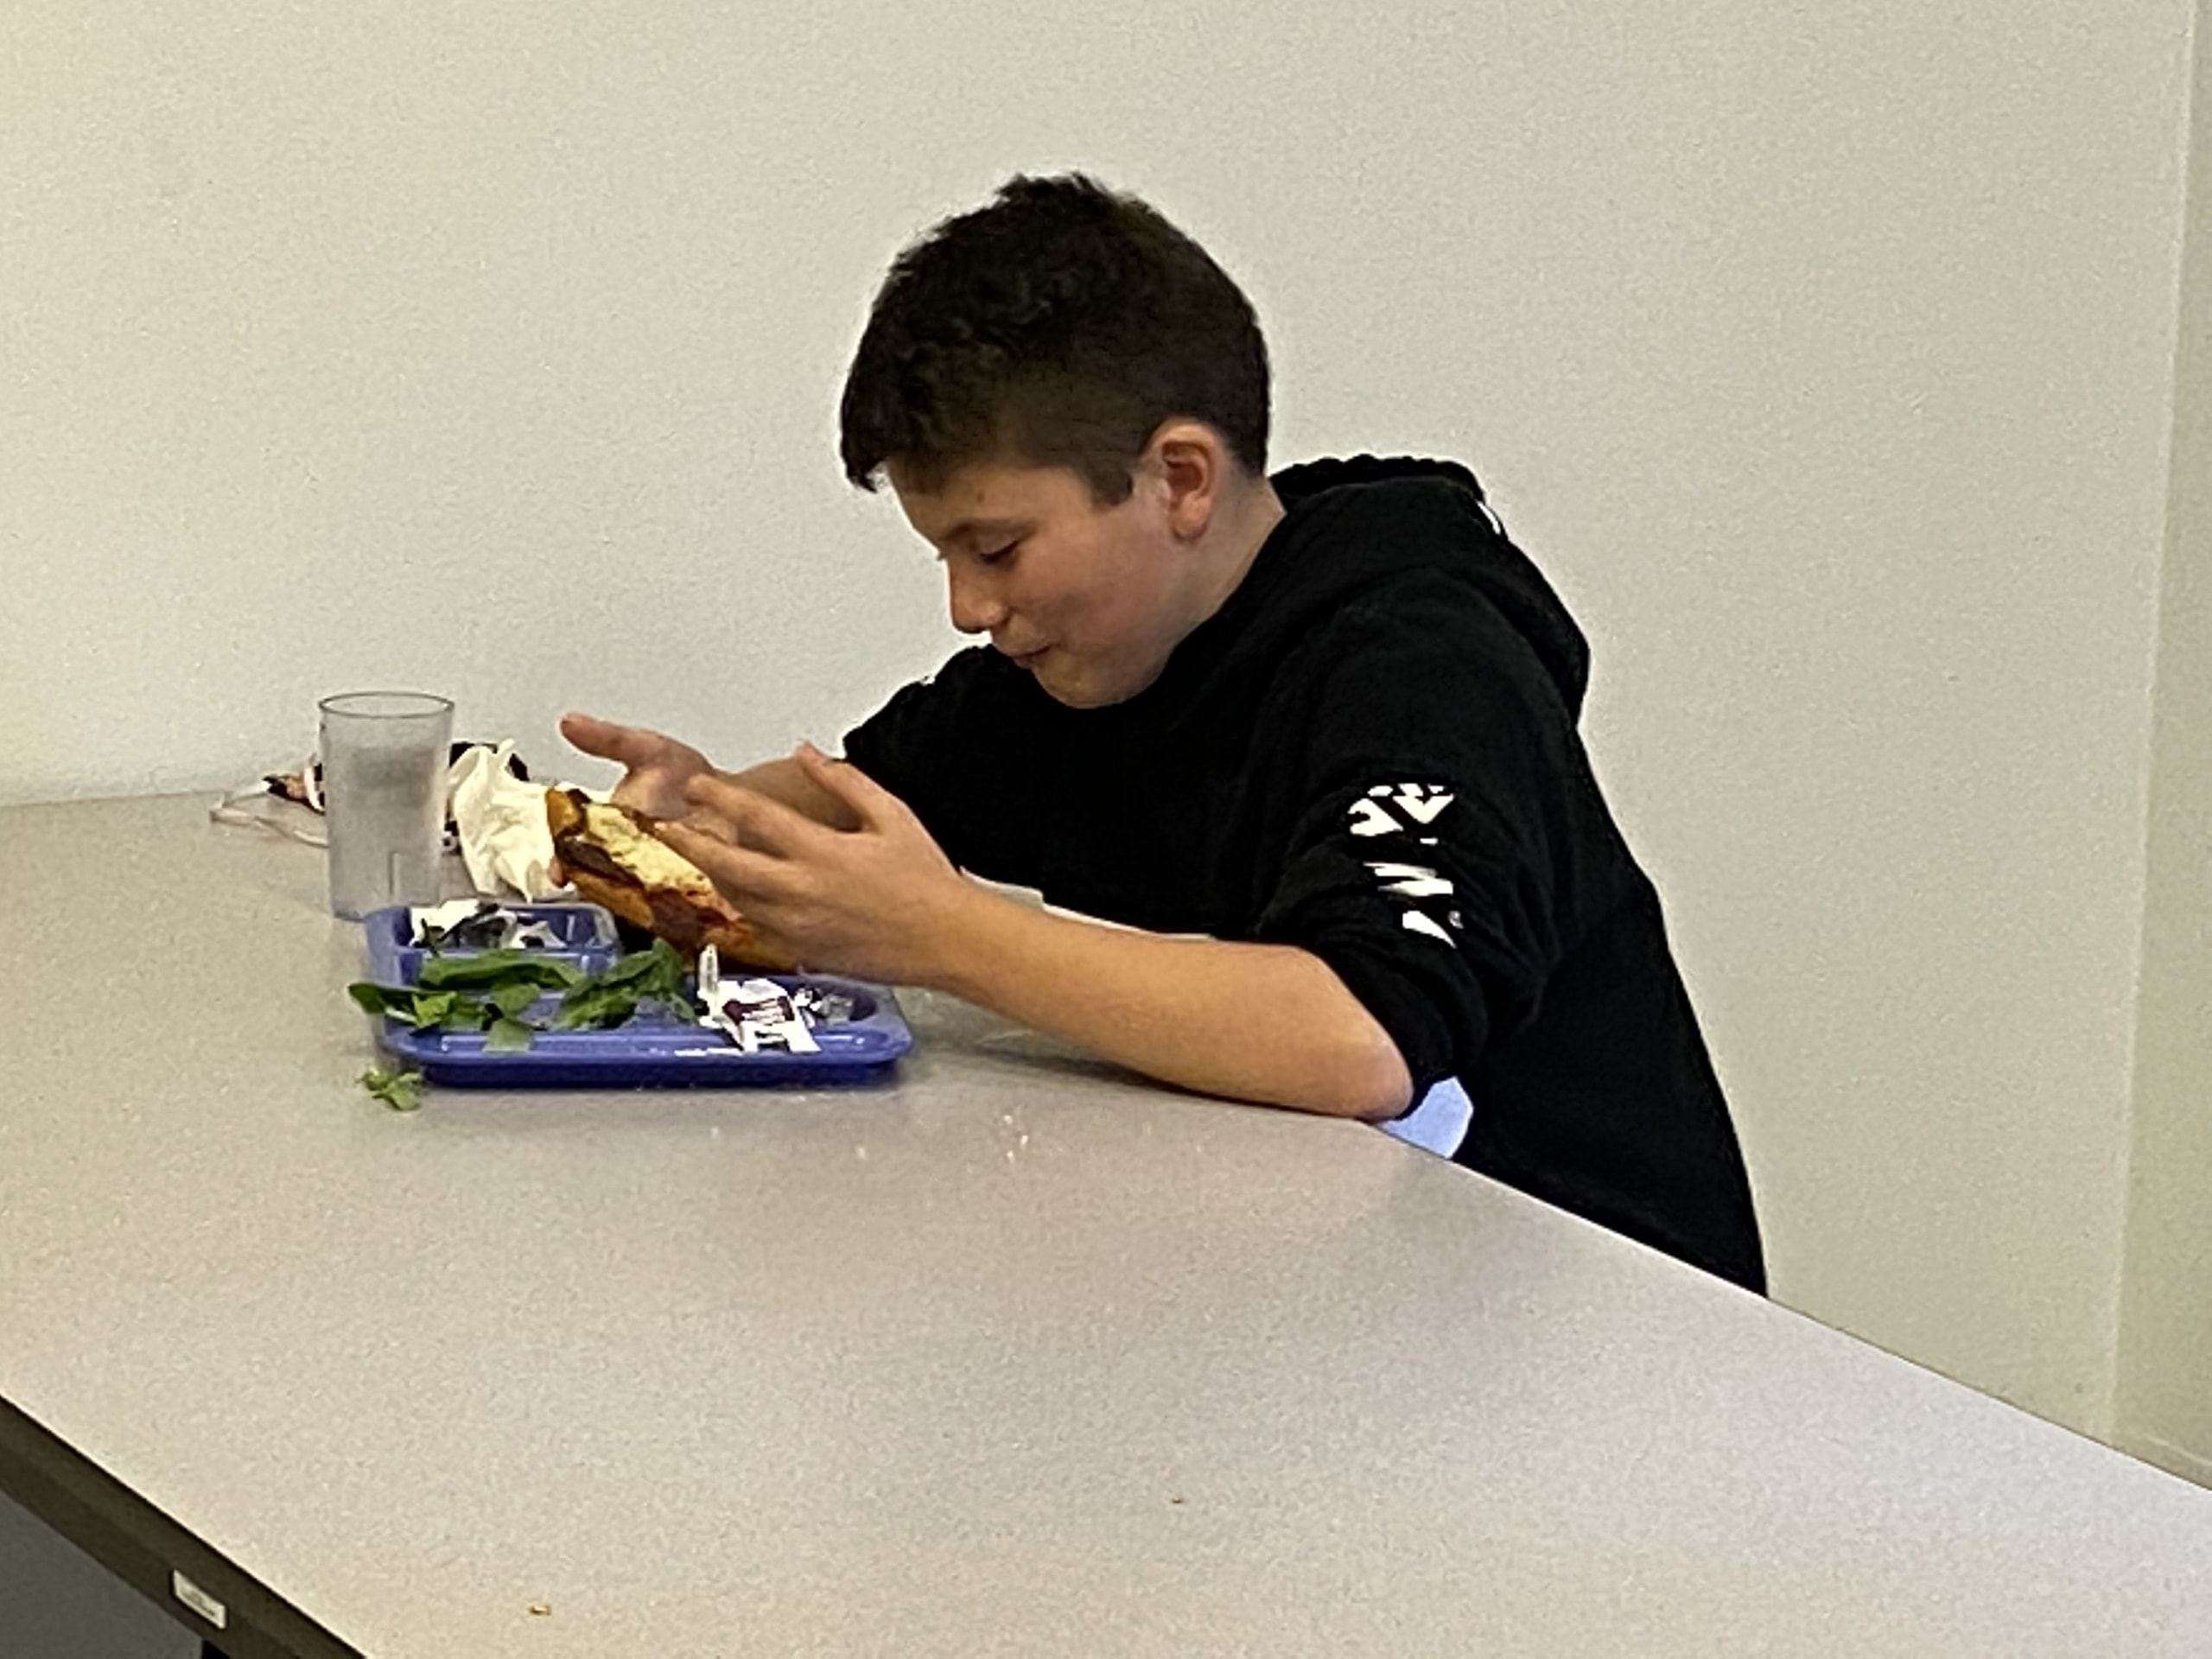 Skagway School offers free lunches to students who qualify for Medicaid